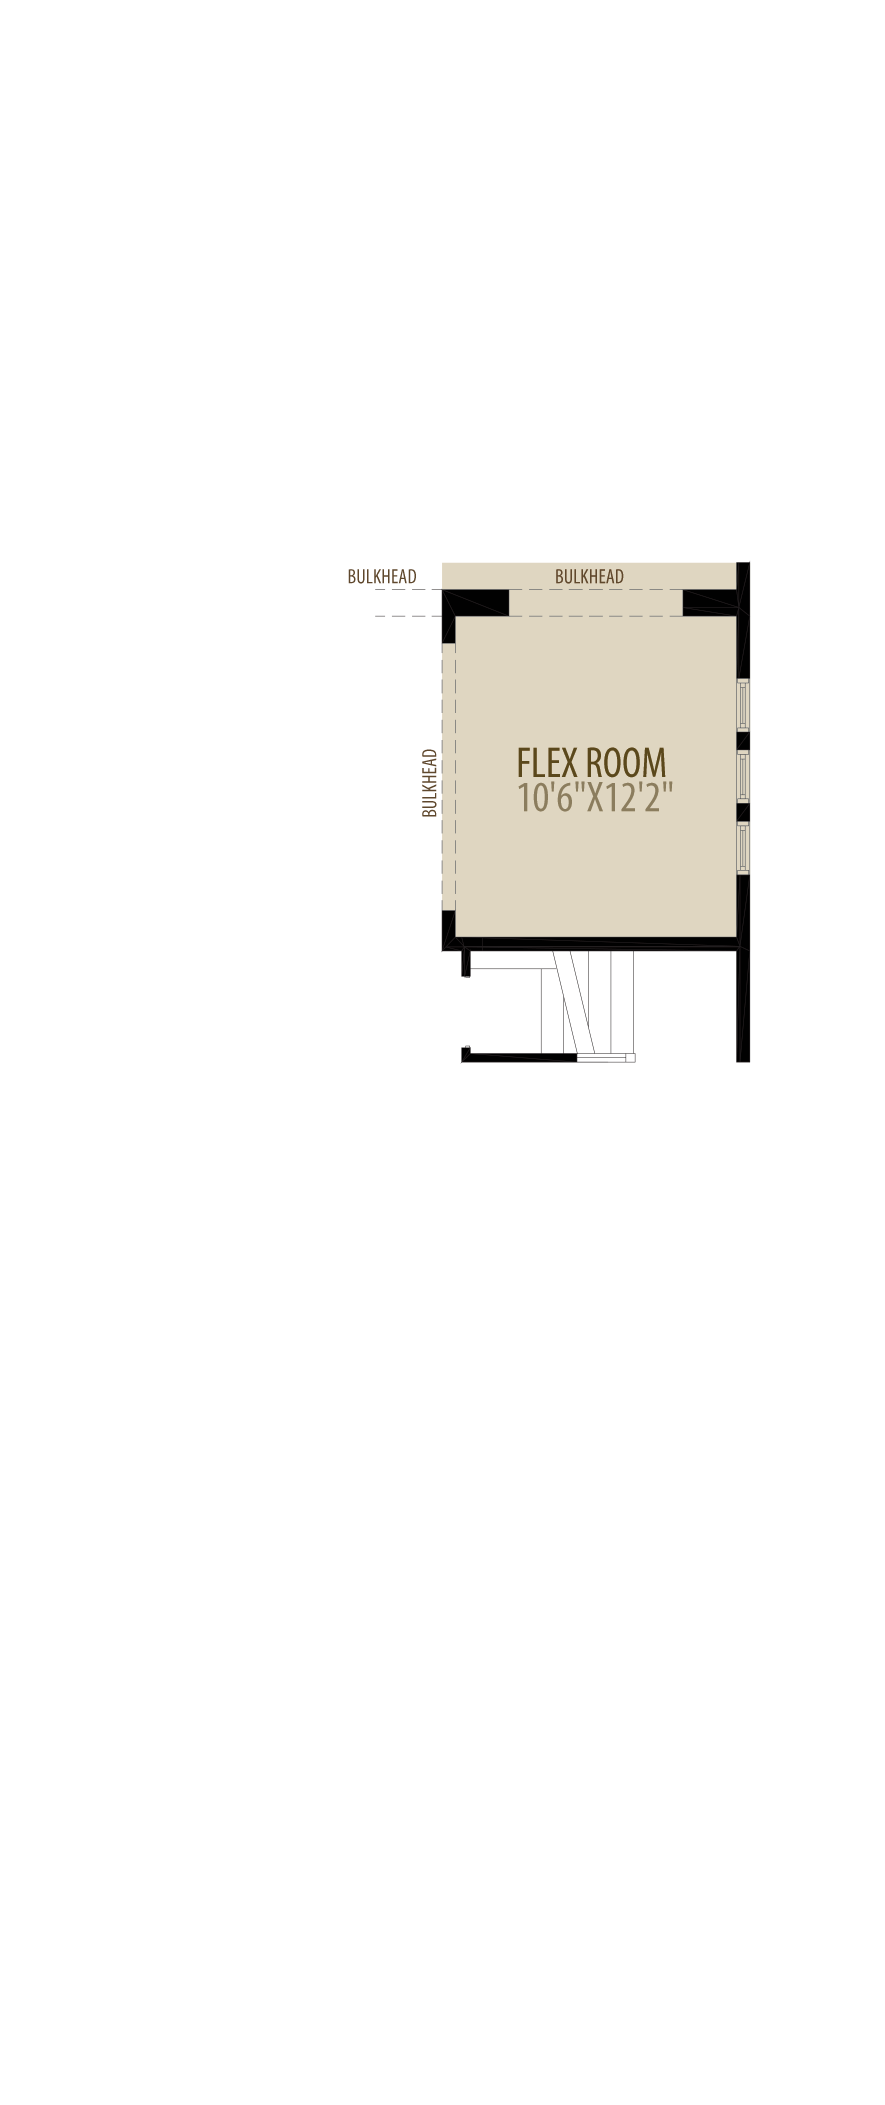 Flex Room adds 132 sq ft